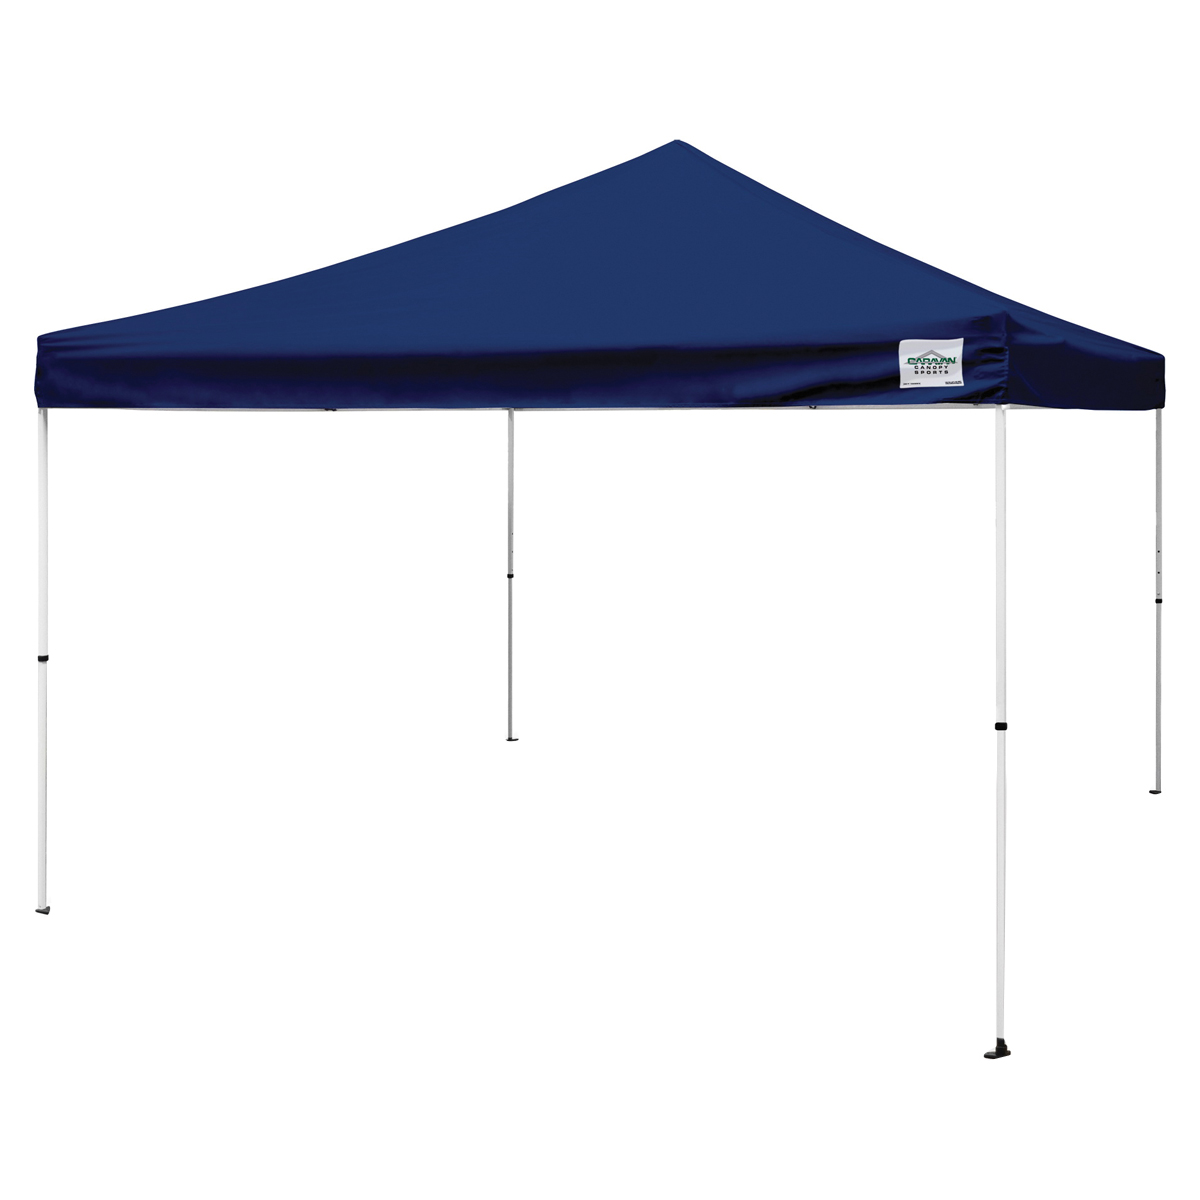 Picture of Seasonal Trends M-Series 21208100060 Canopy, 12 ft L, 12 ft W, 10 in H, Steel Frame, Polyester Canopy, Blue Canopy